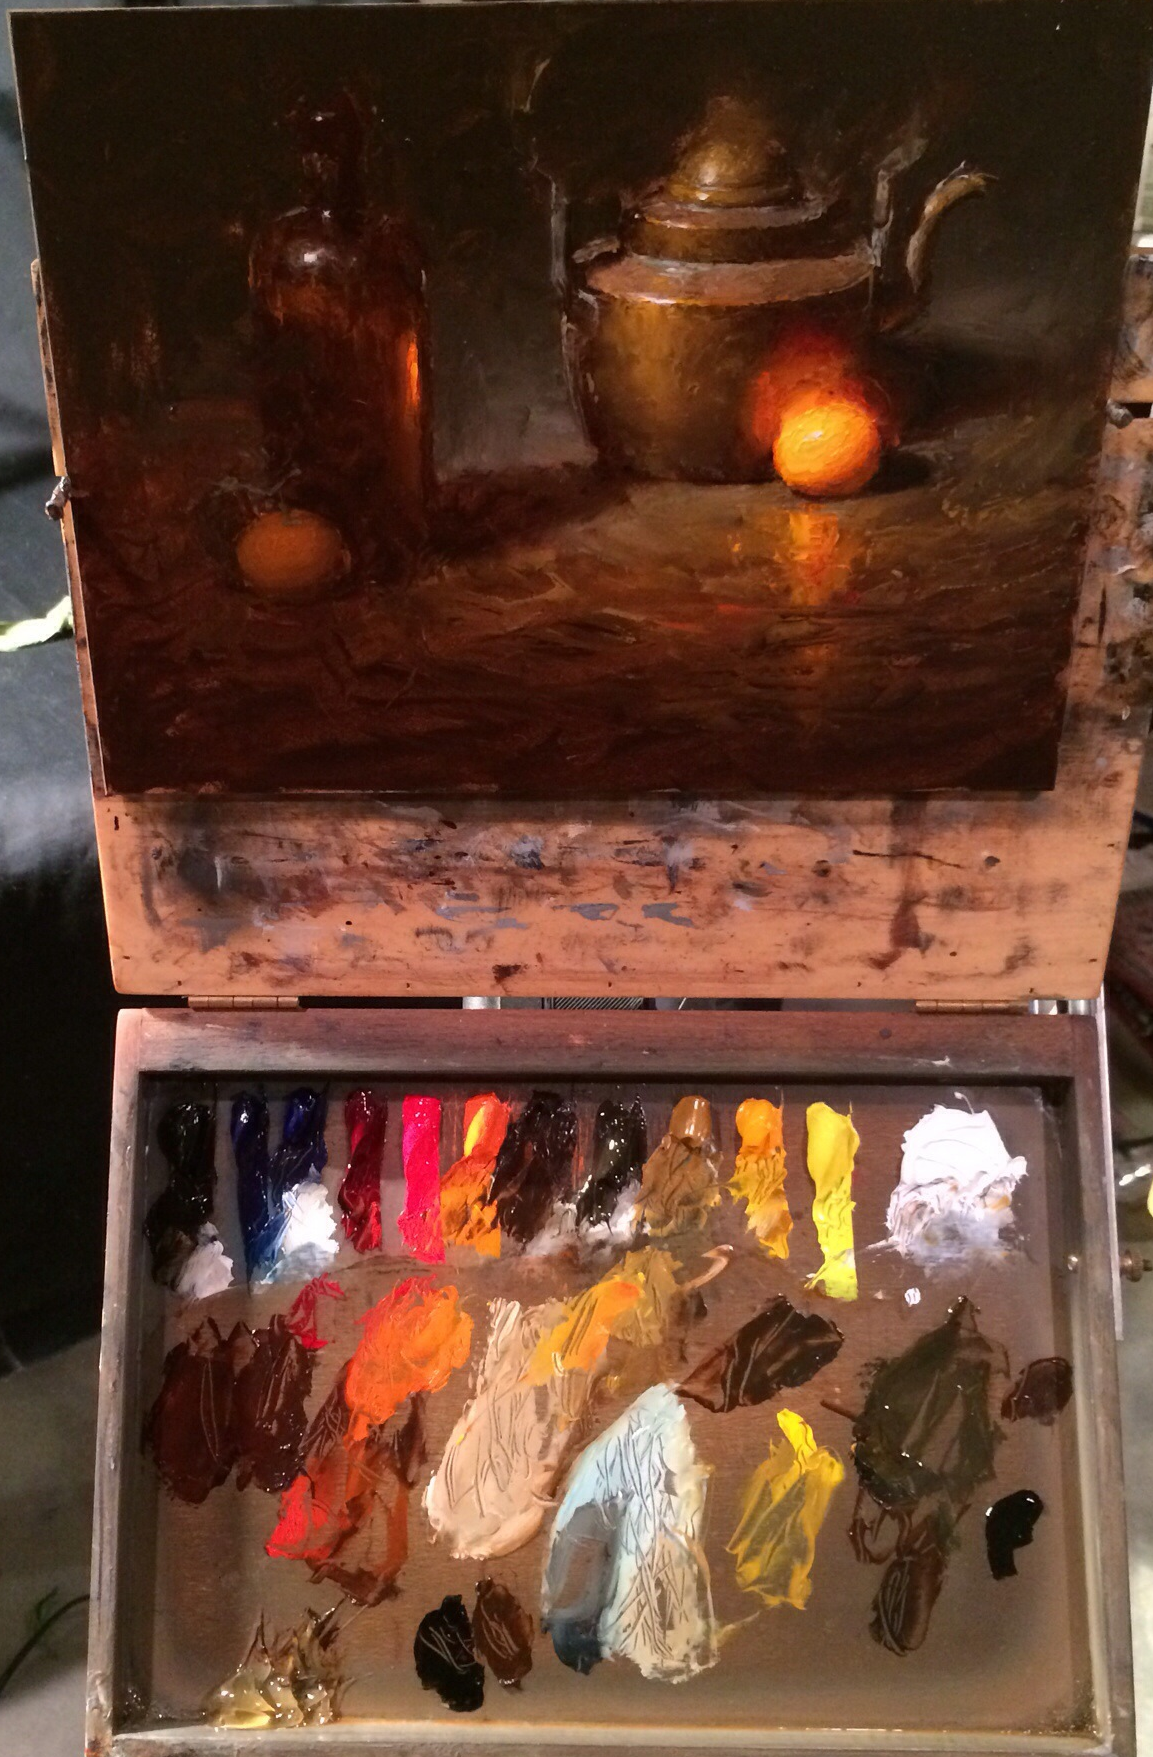 David Cheifetz's knife painting demo from our workshop.